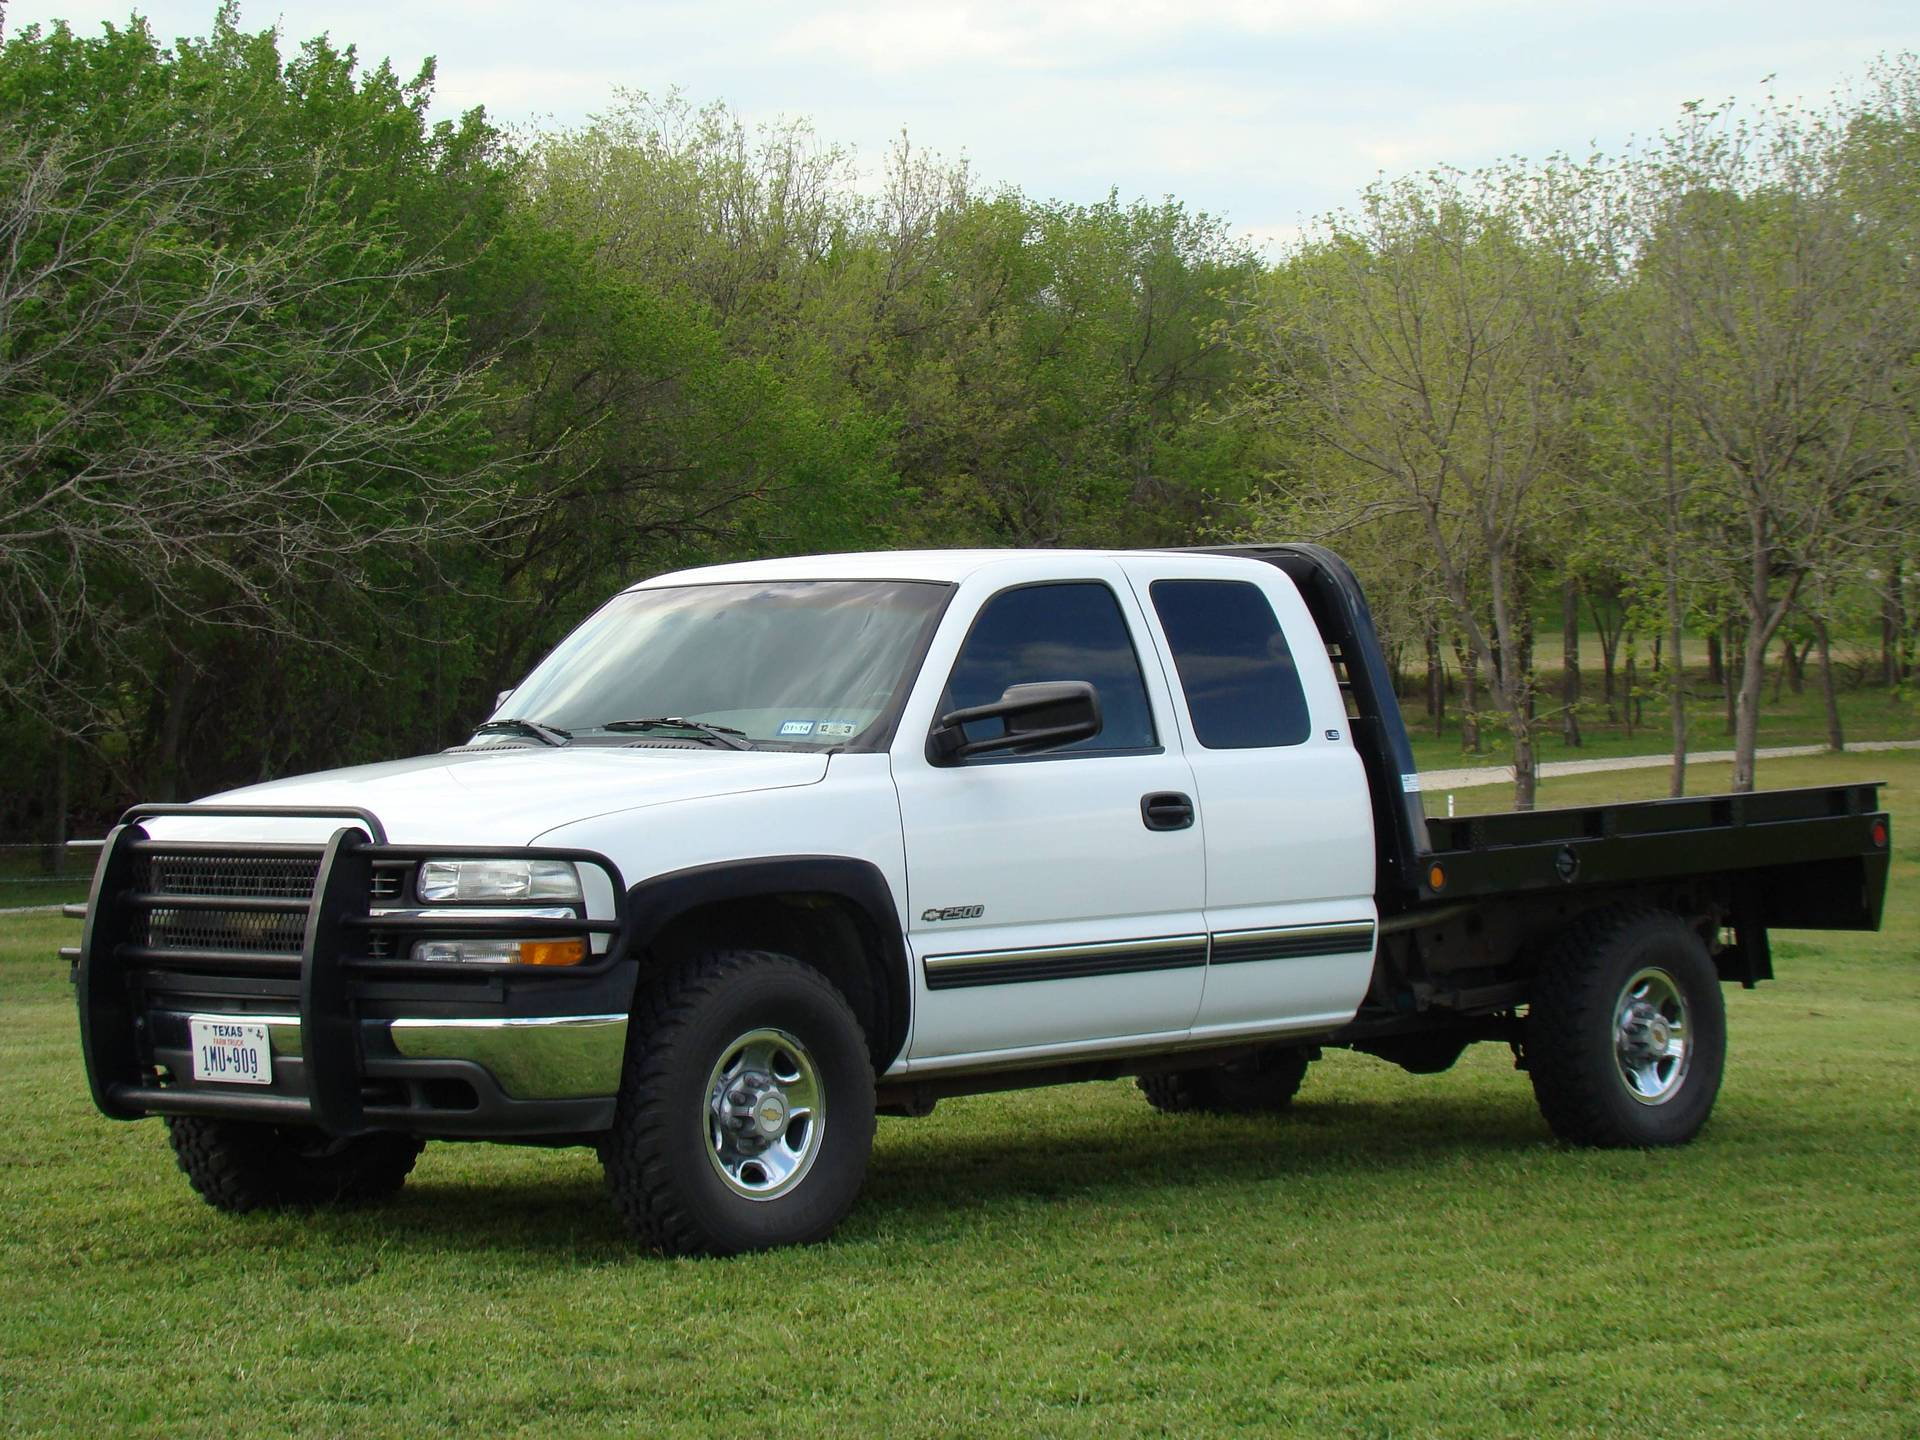 99 chevy 2500 flatbed. Black Bedroom Furniture Sets. Home Design Ideas